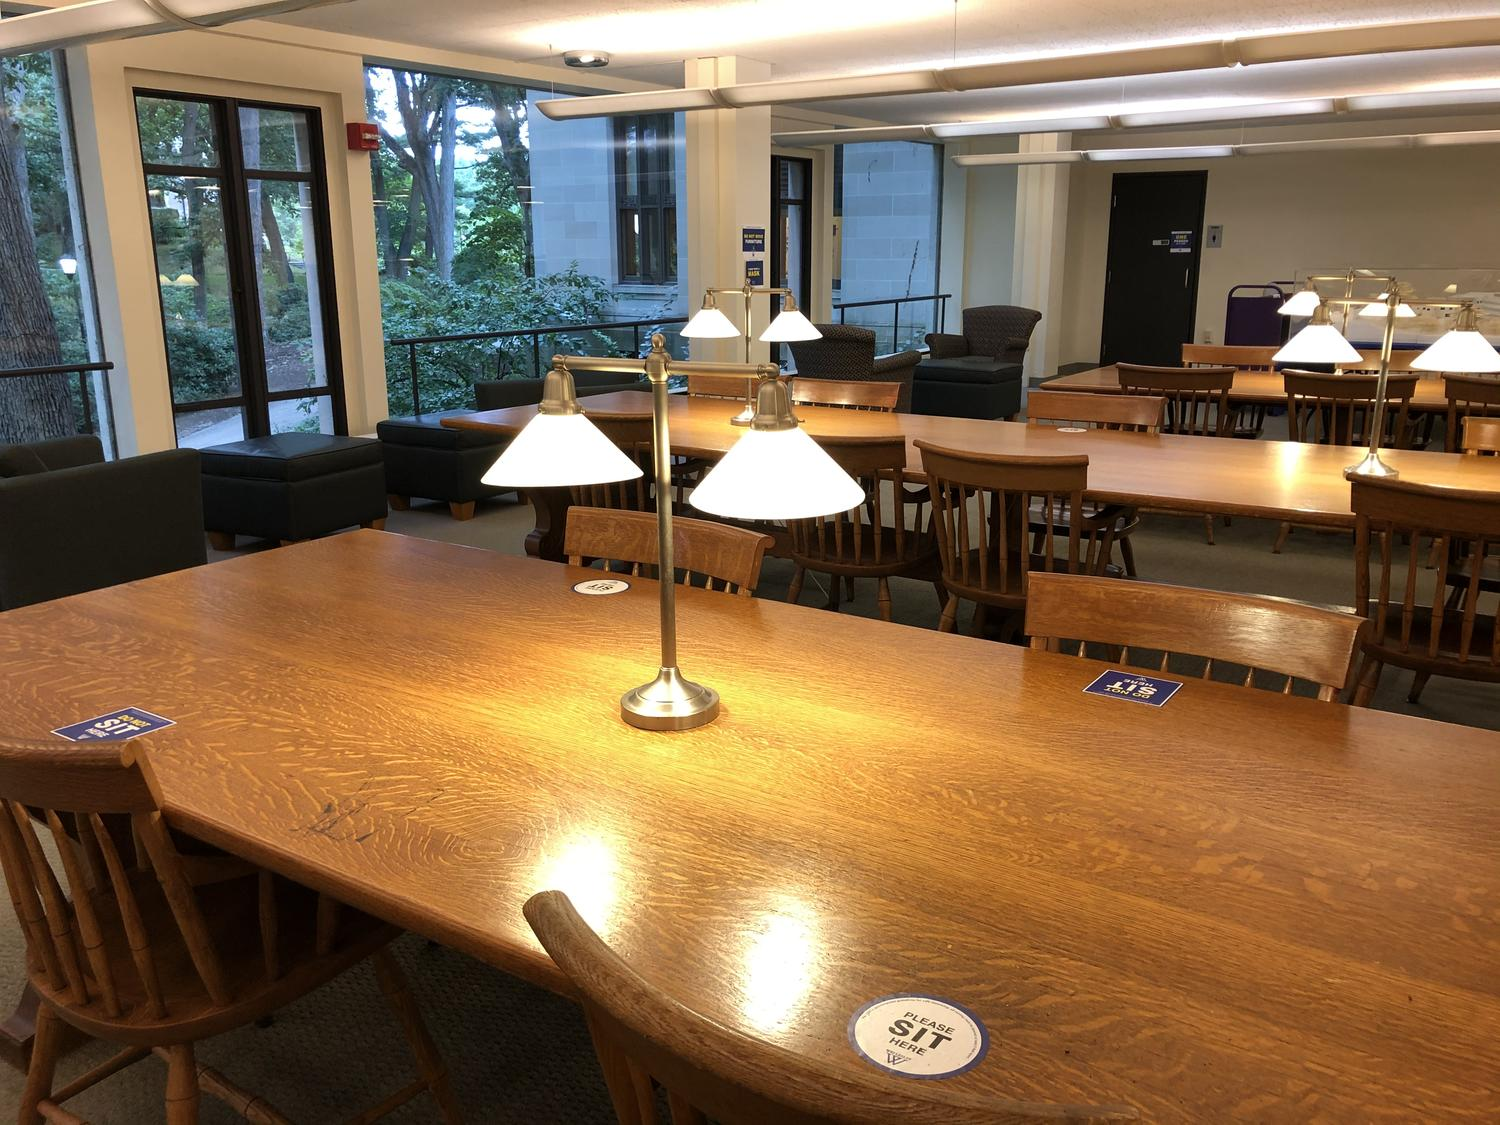 Clark Reading Room Tables Marked for Physical Distancing